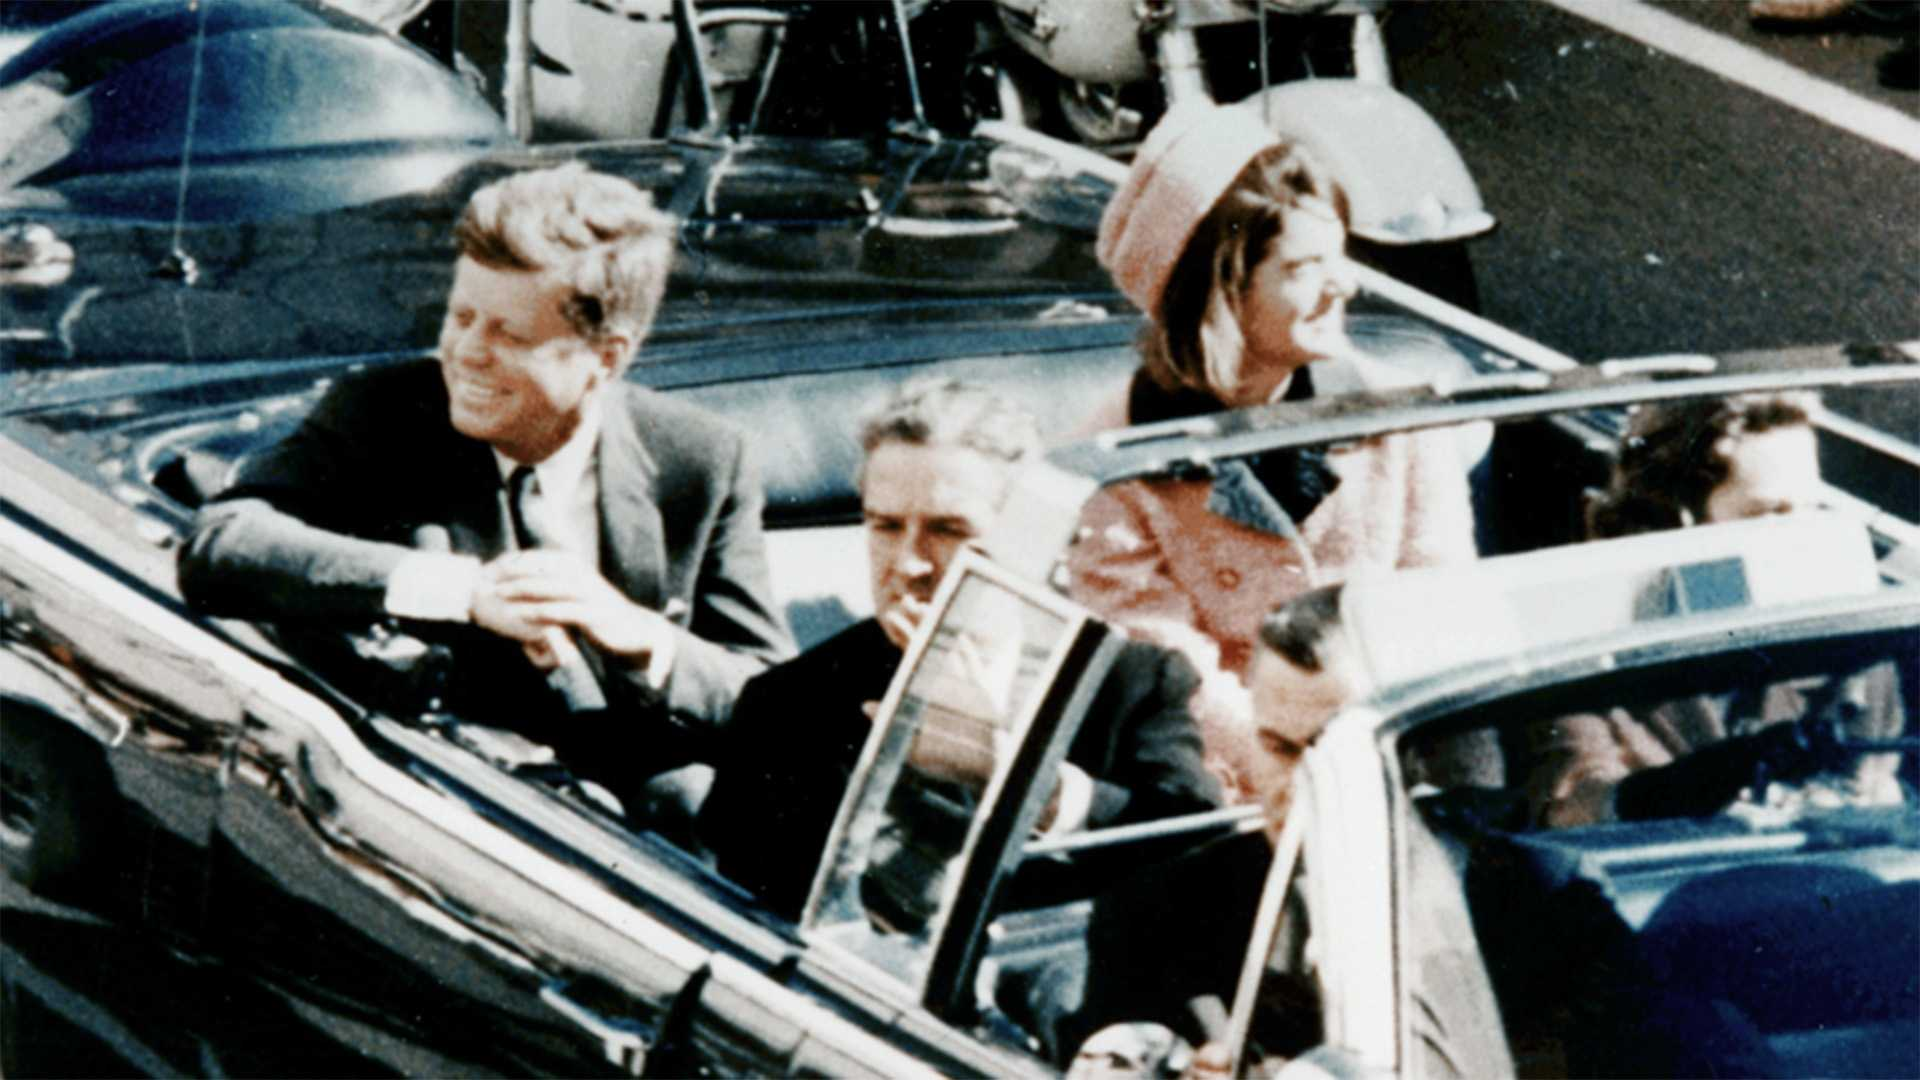 Friday, November 22: JFK 50